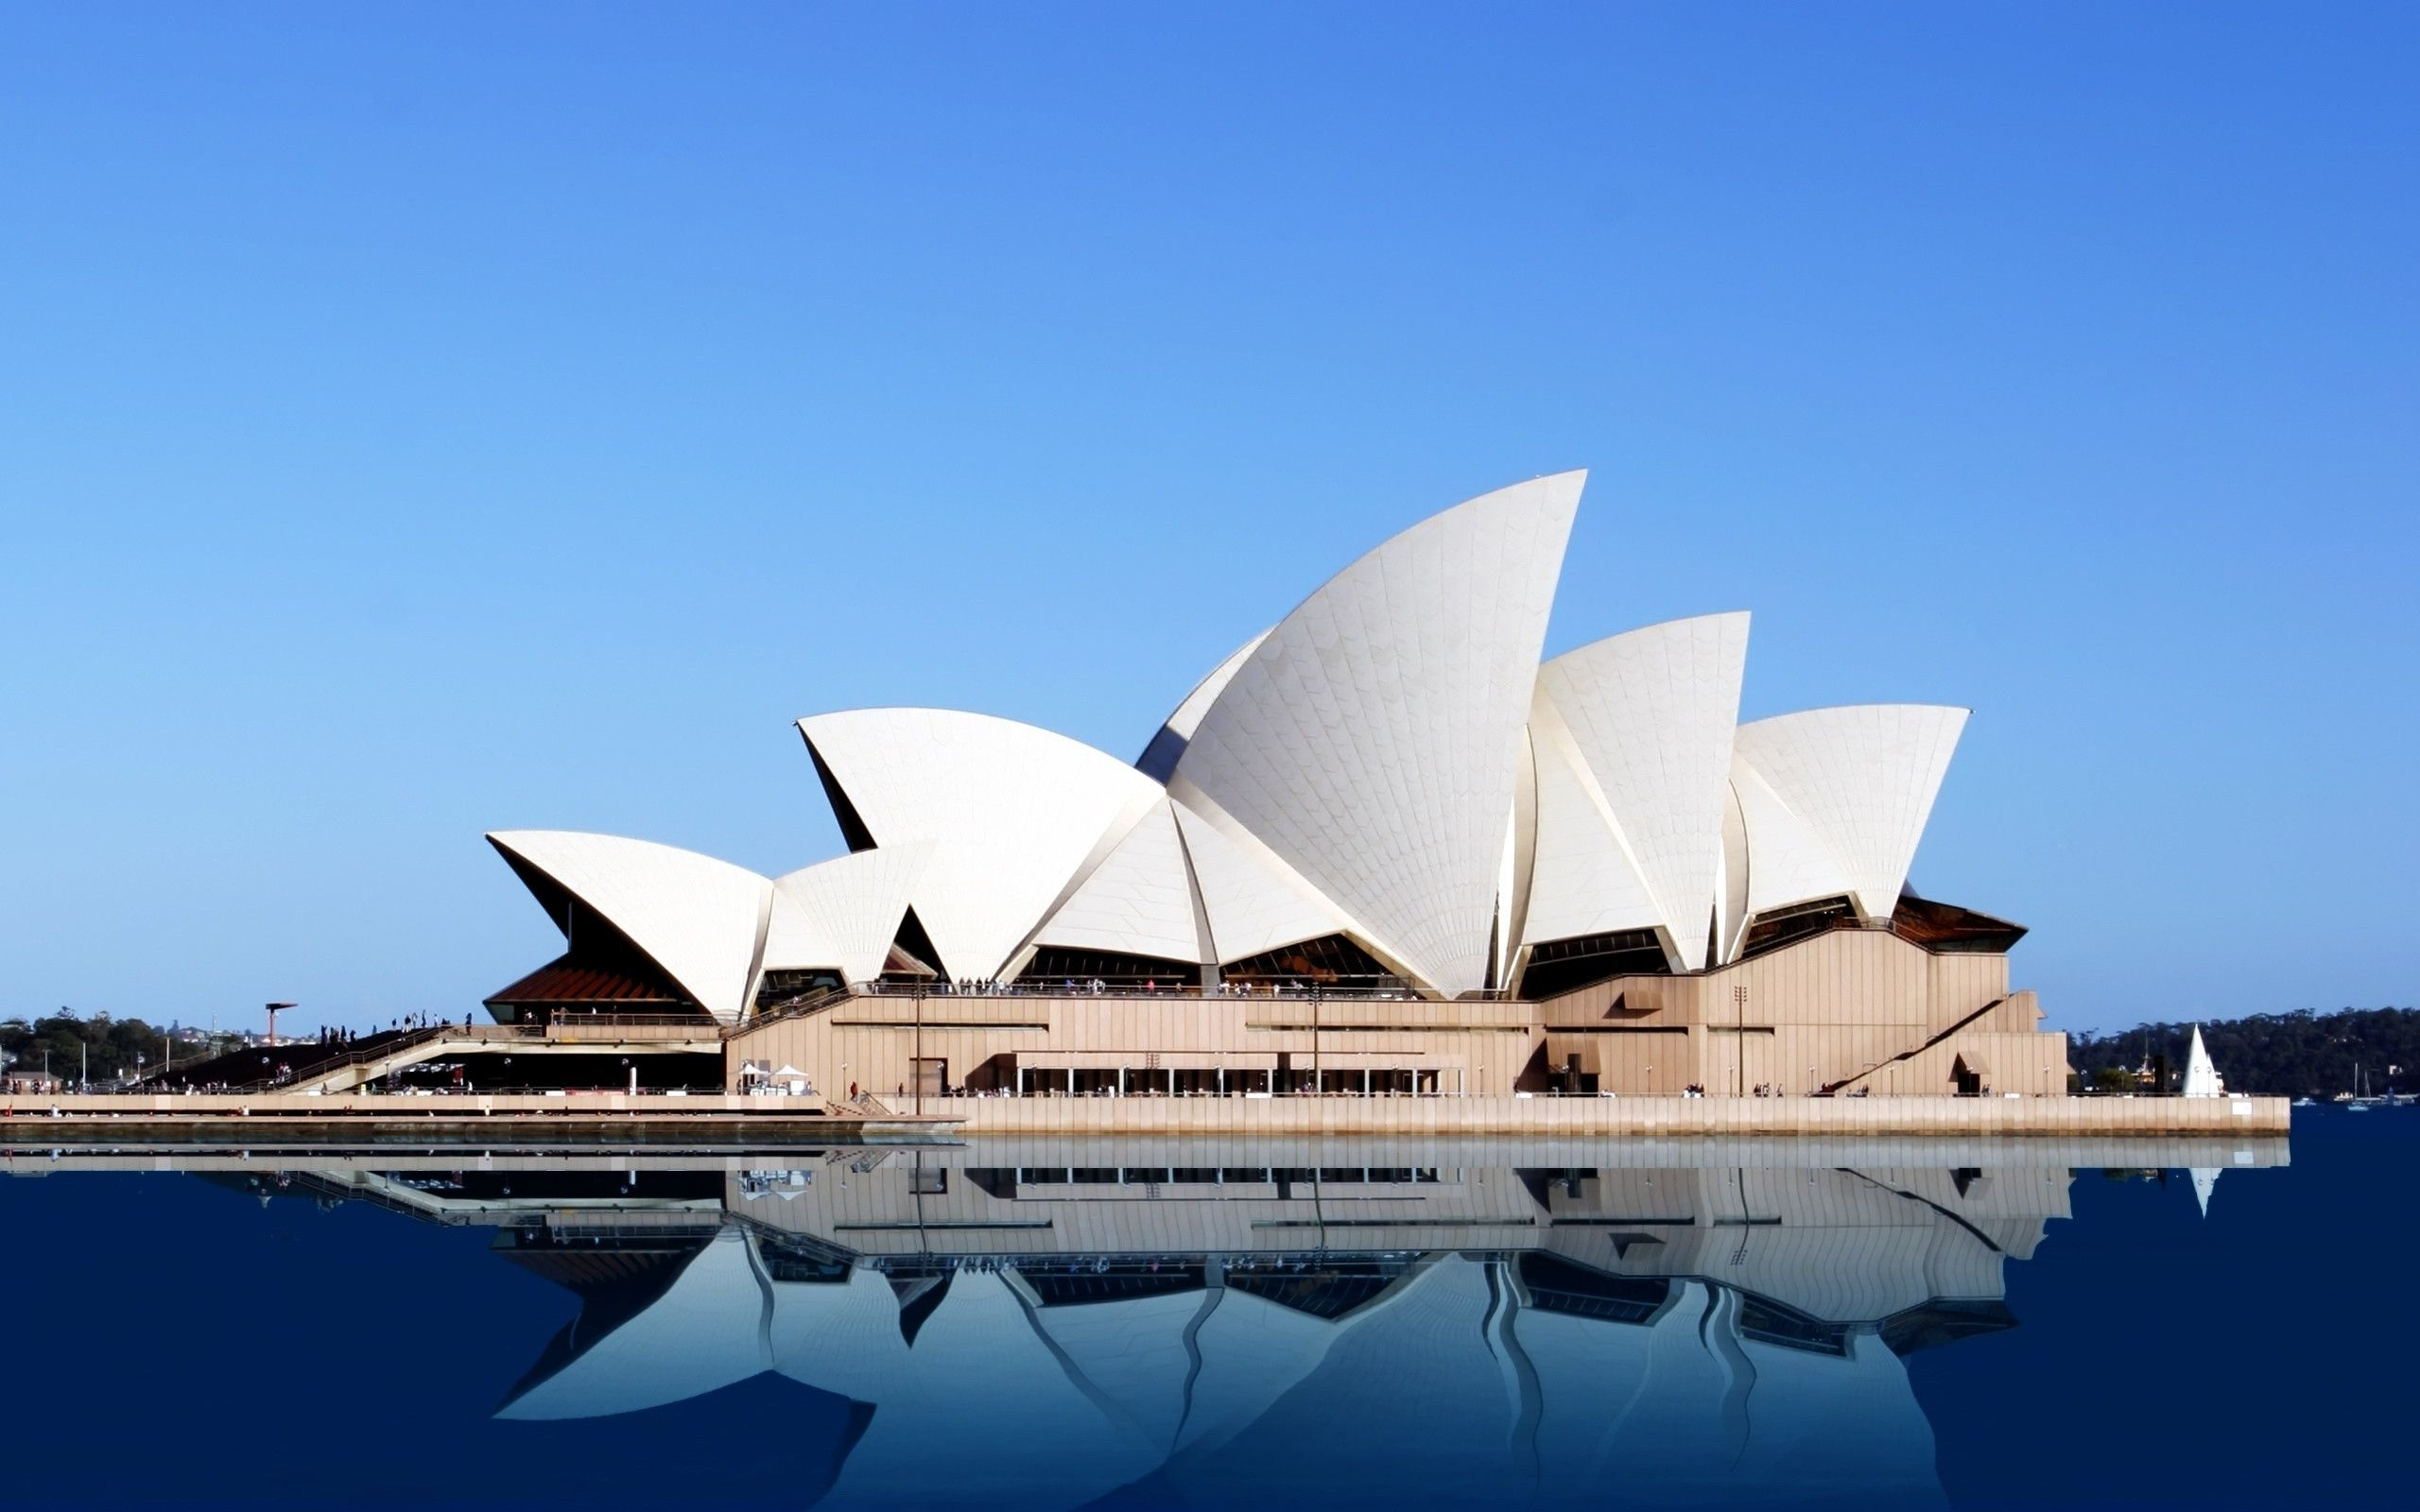 HQ Sydney Opera House Wallpapers | File 264.86Kb